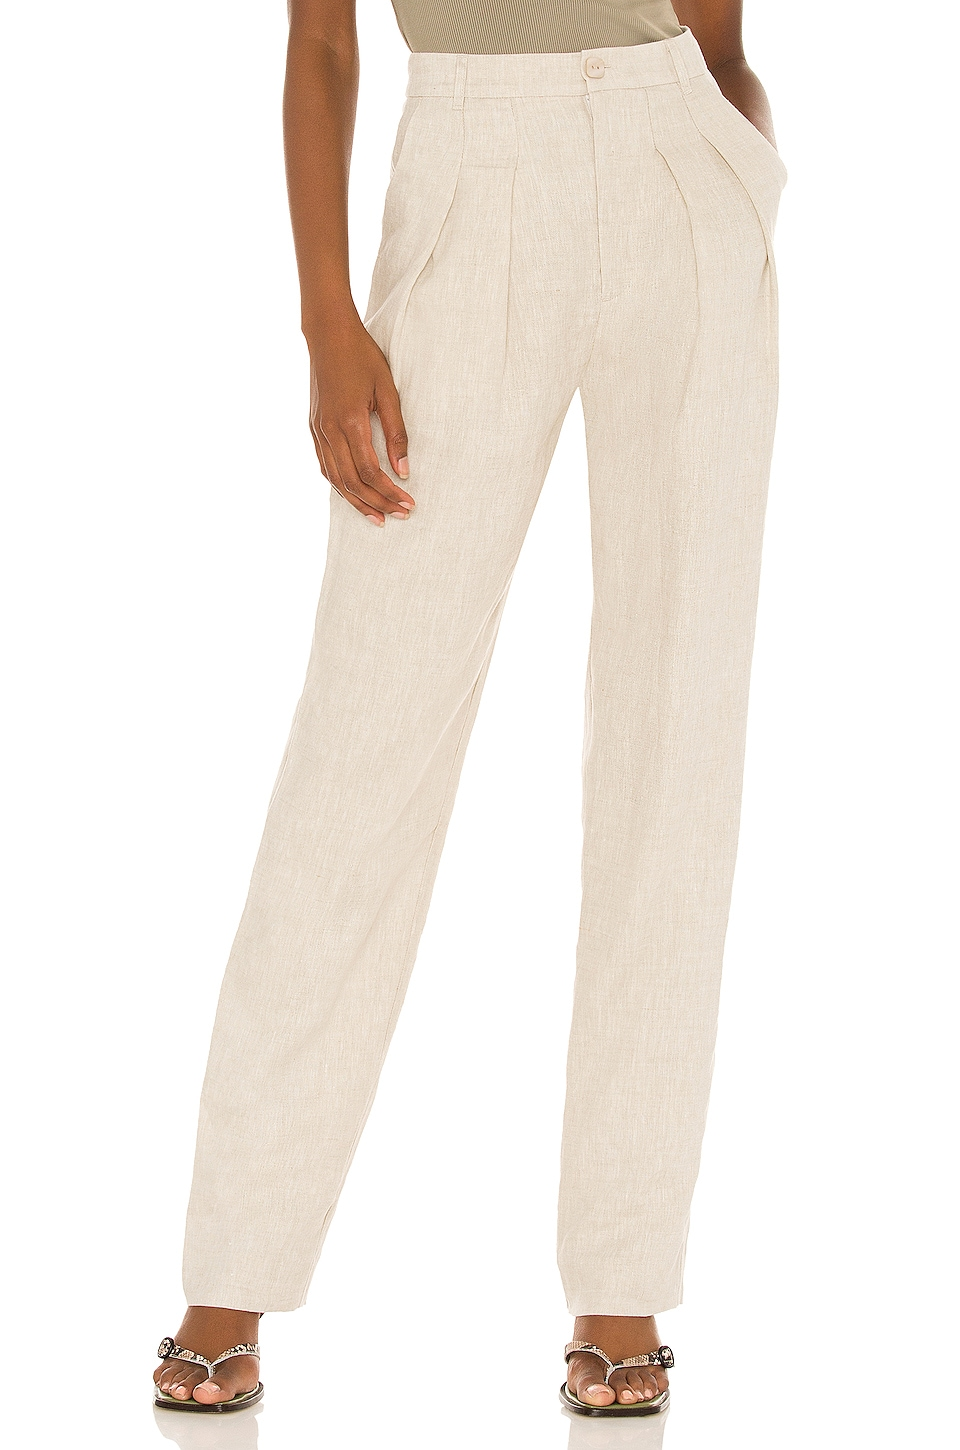 Song of Style Coraline Pant in Beige